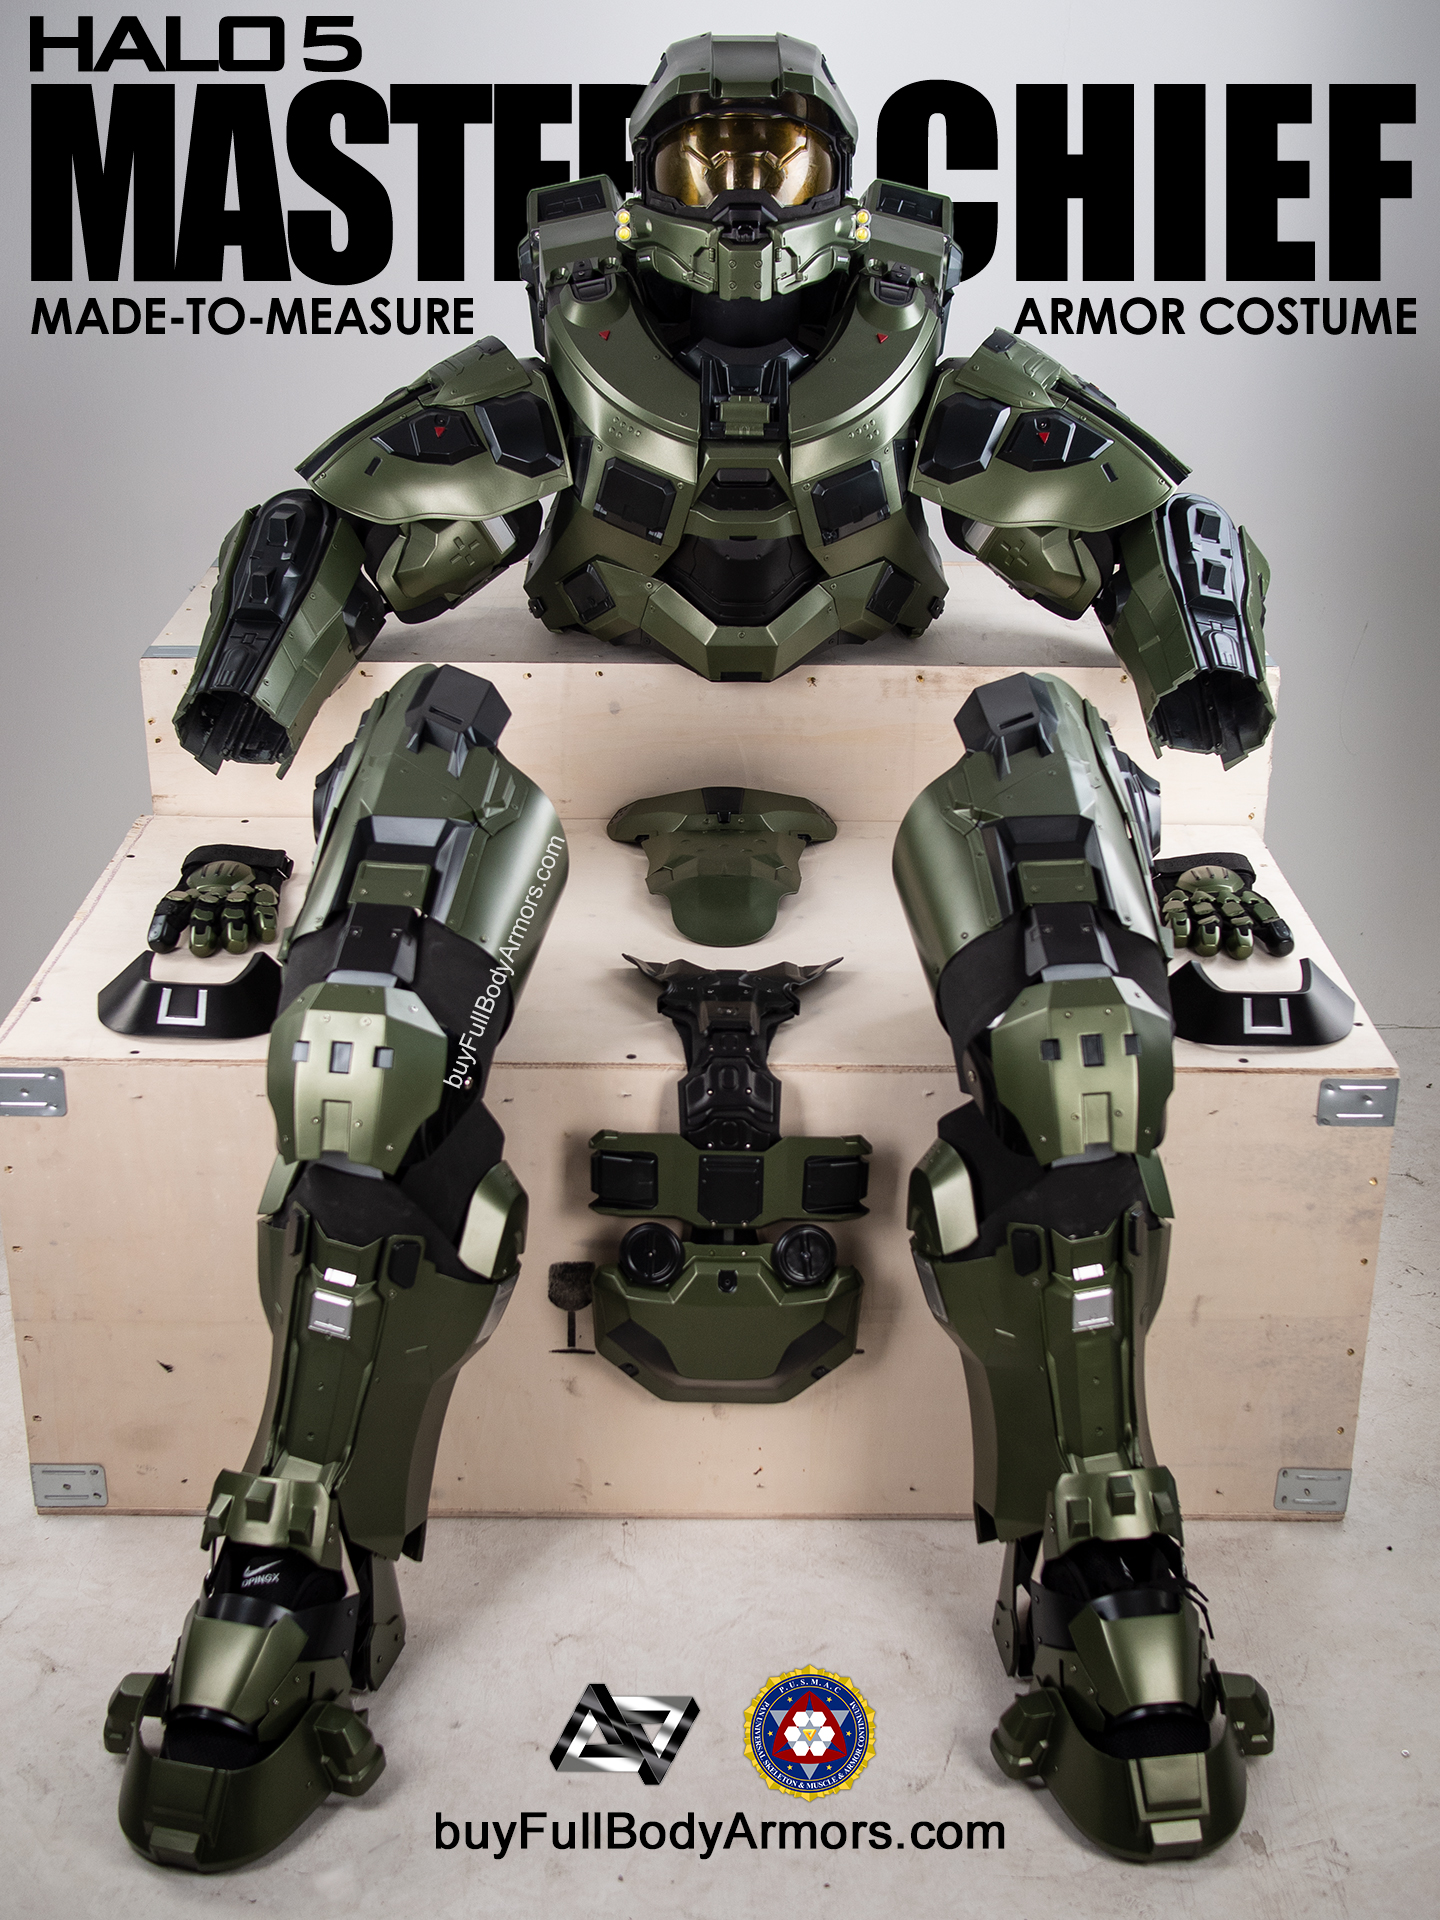 Photos of New Master Chief Mark VI Armor Costume in Halo 5 full